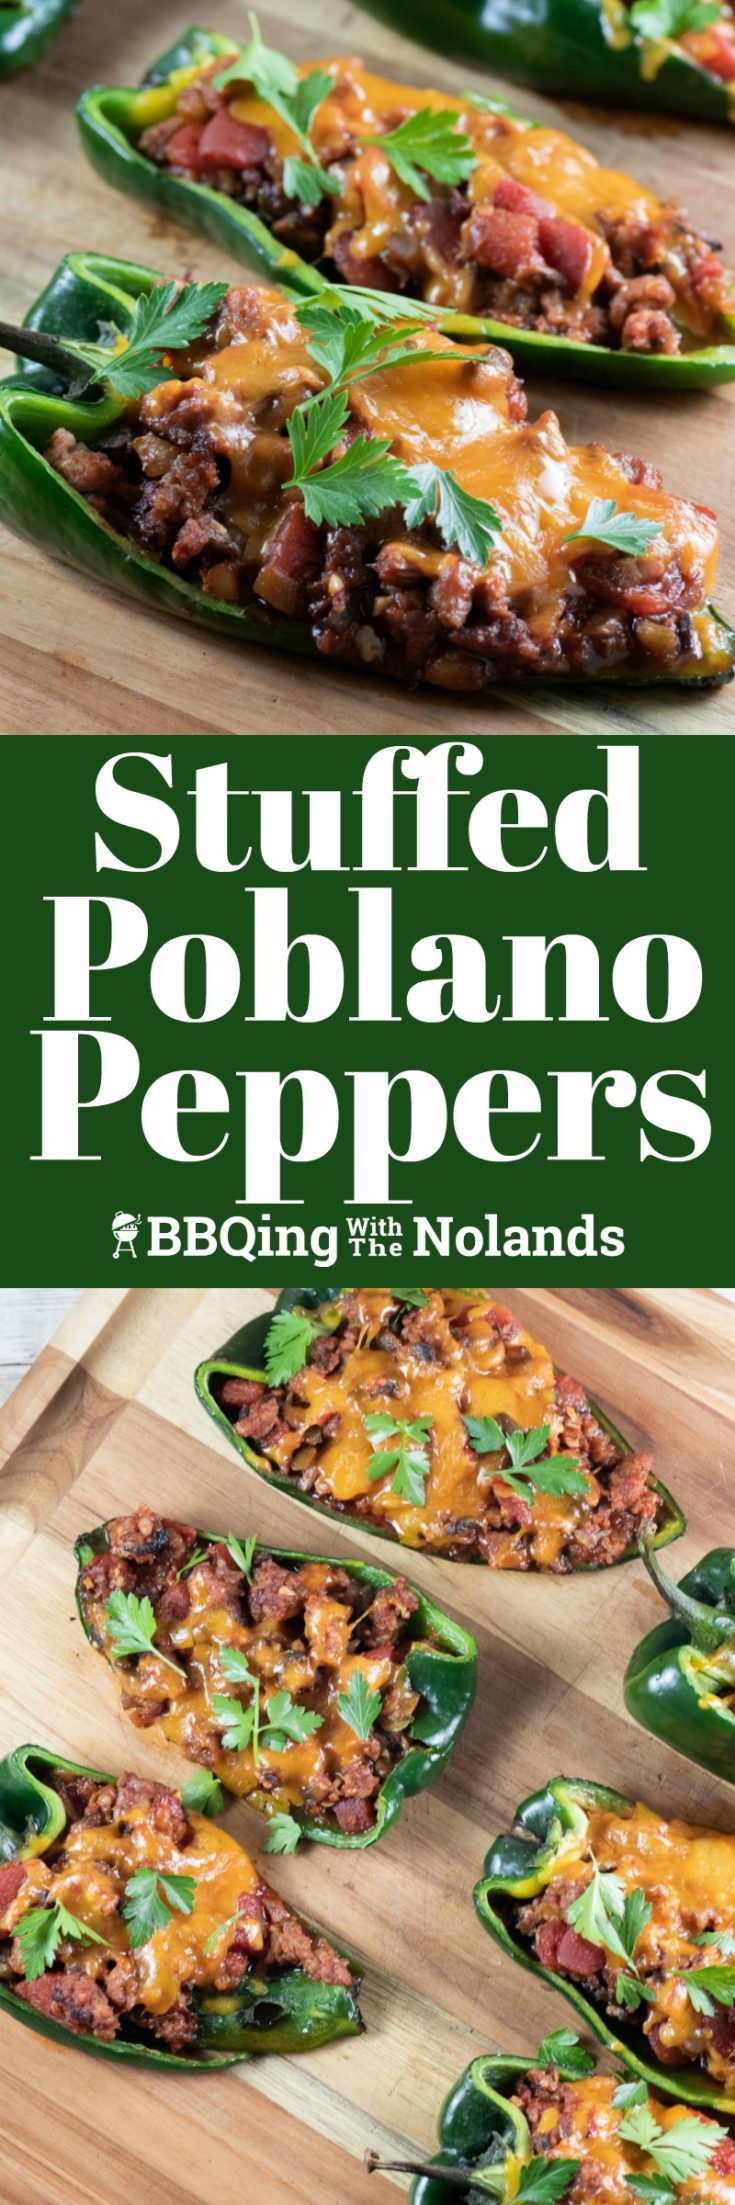 Stuffed Poblano Peppers on the grill are super easy! Oh, and did I mention really, really tasty!